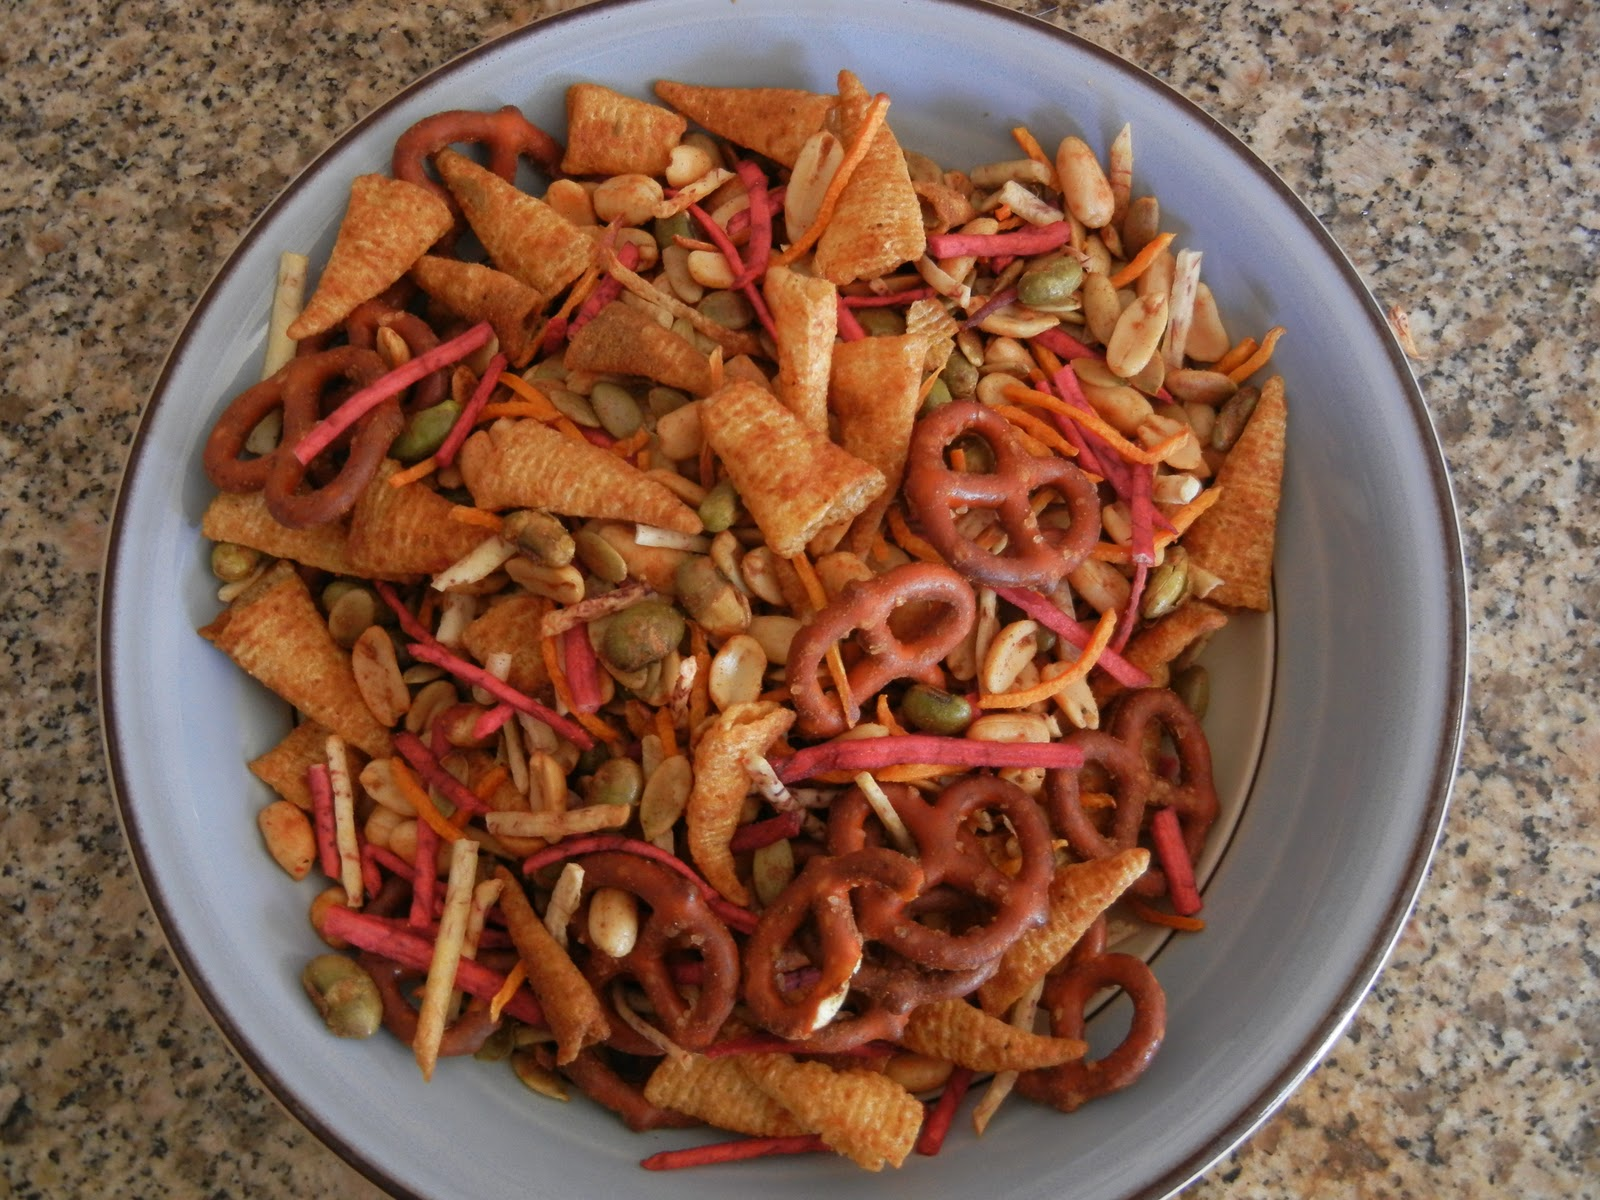 From My Southwest Kitchen: BA: Party Mix